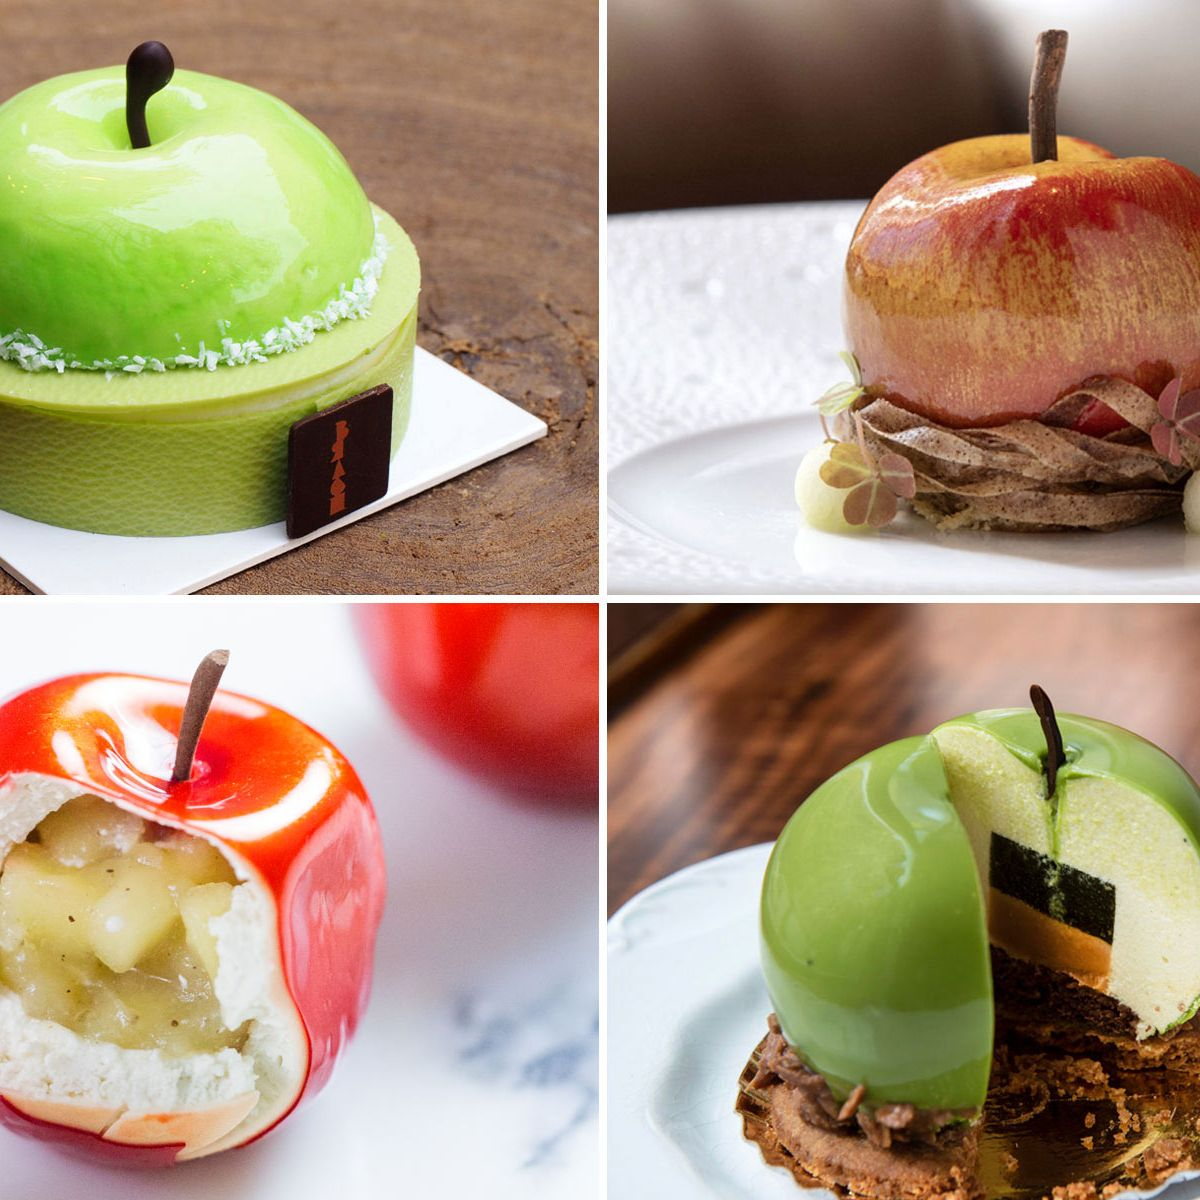 Why Pastry Chefs Are Obsessed With Trompe l'Oeil Apples